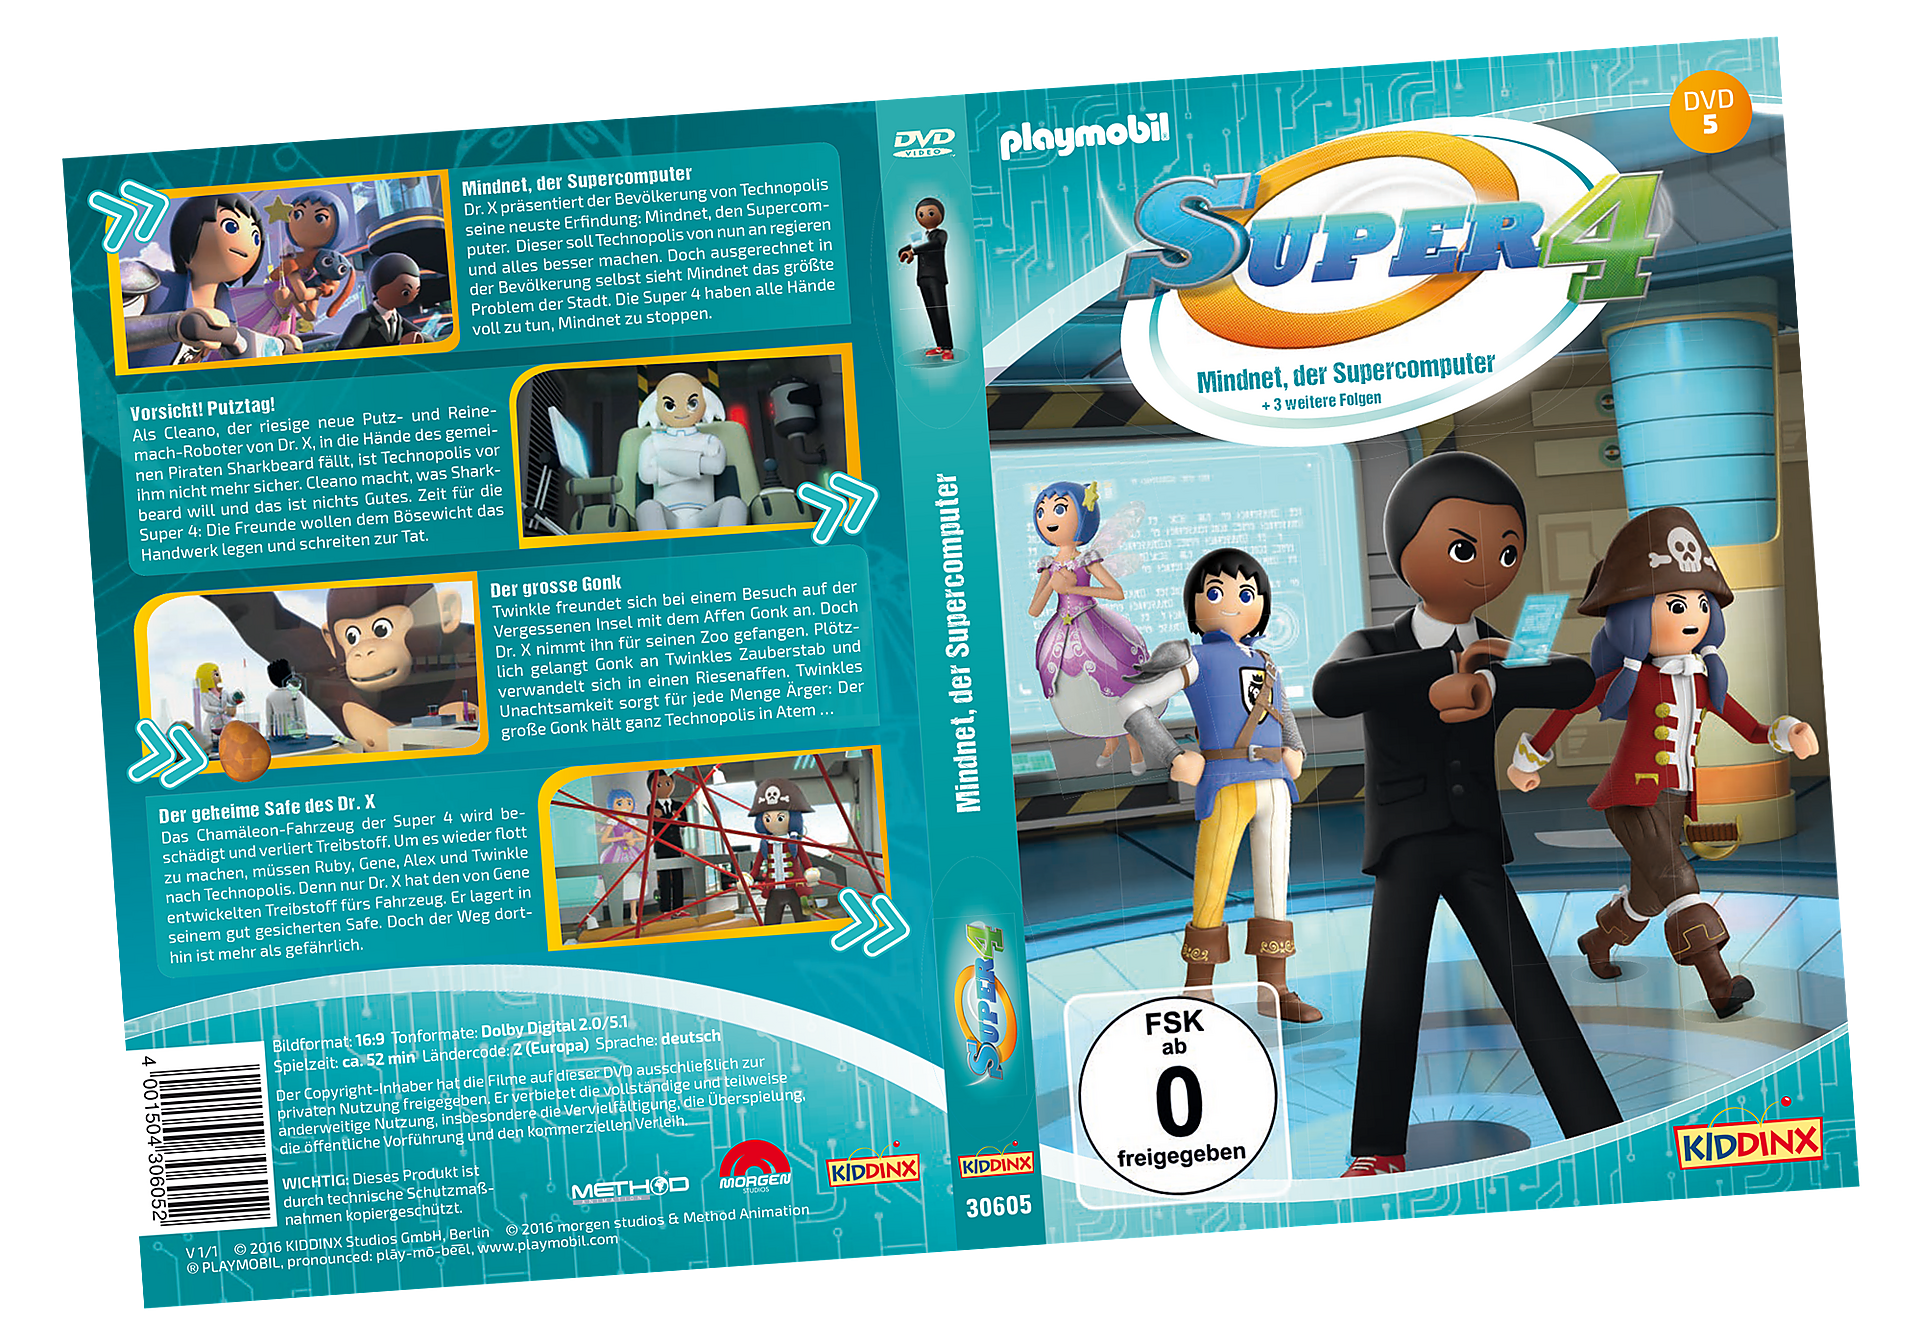 http://media.playmobil.com/i/playmobil/80480_product_detail/DVD 5 Super4: Mindnet,der Supercomputer